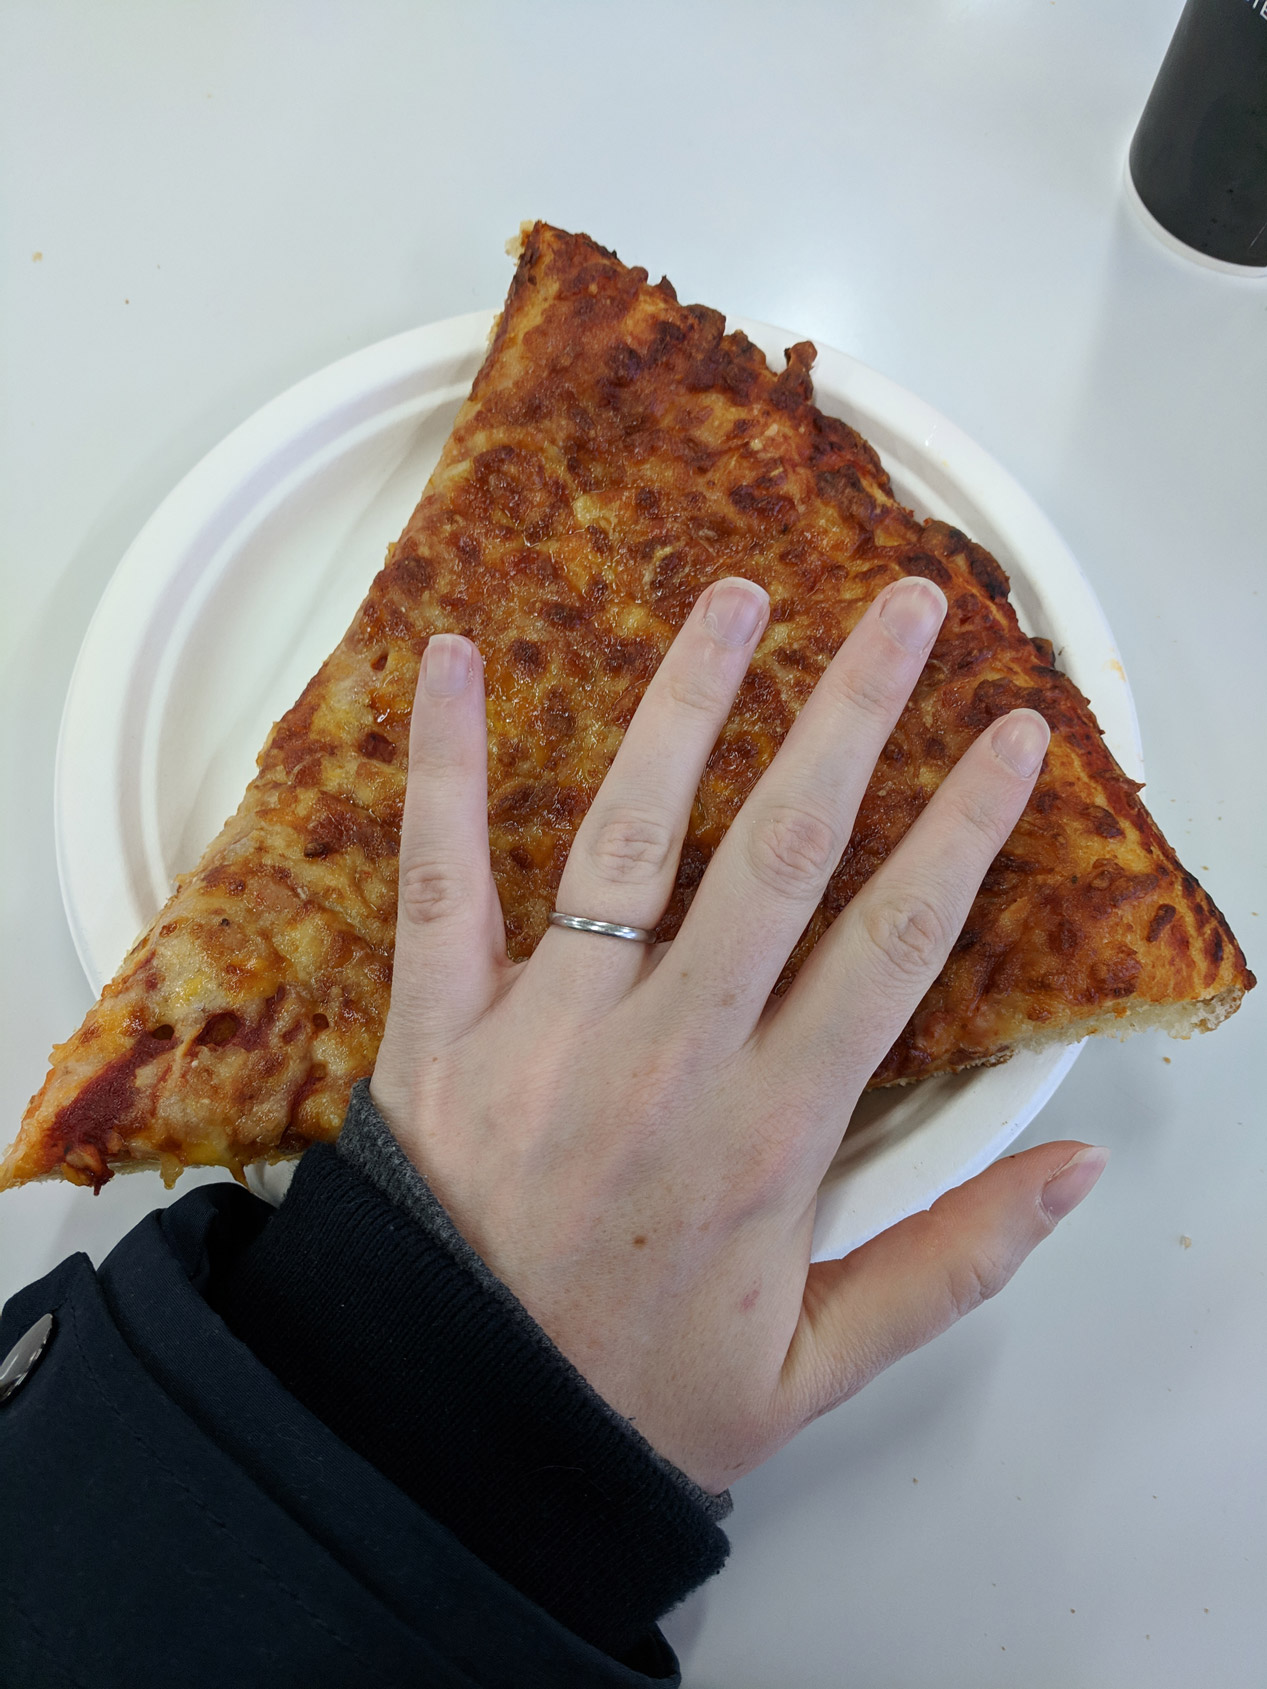 giant slice of pizza from costco in watford with hand hovering over it for scale